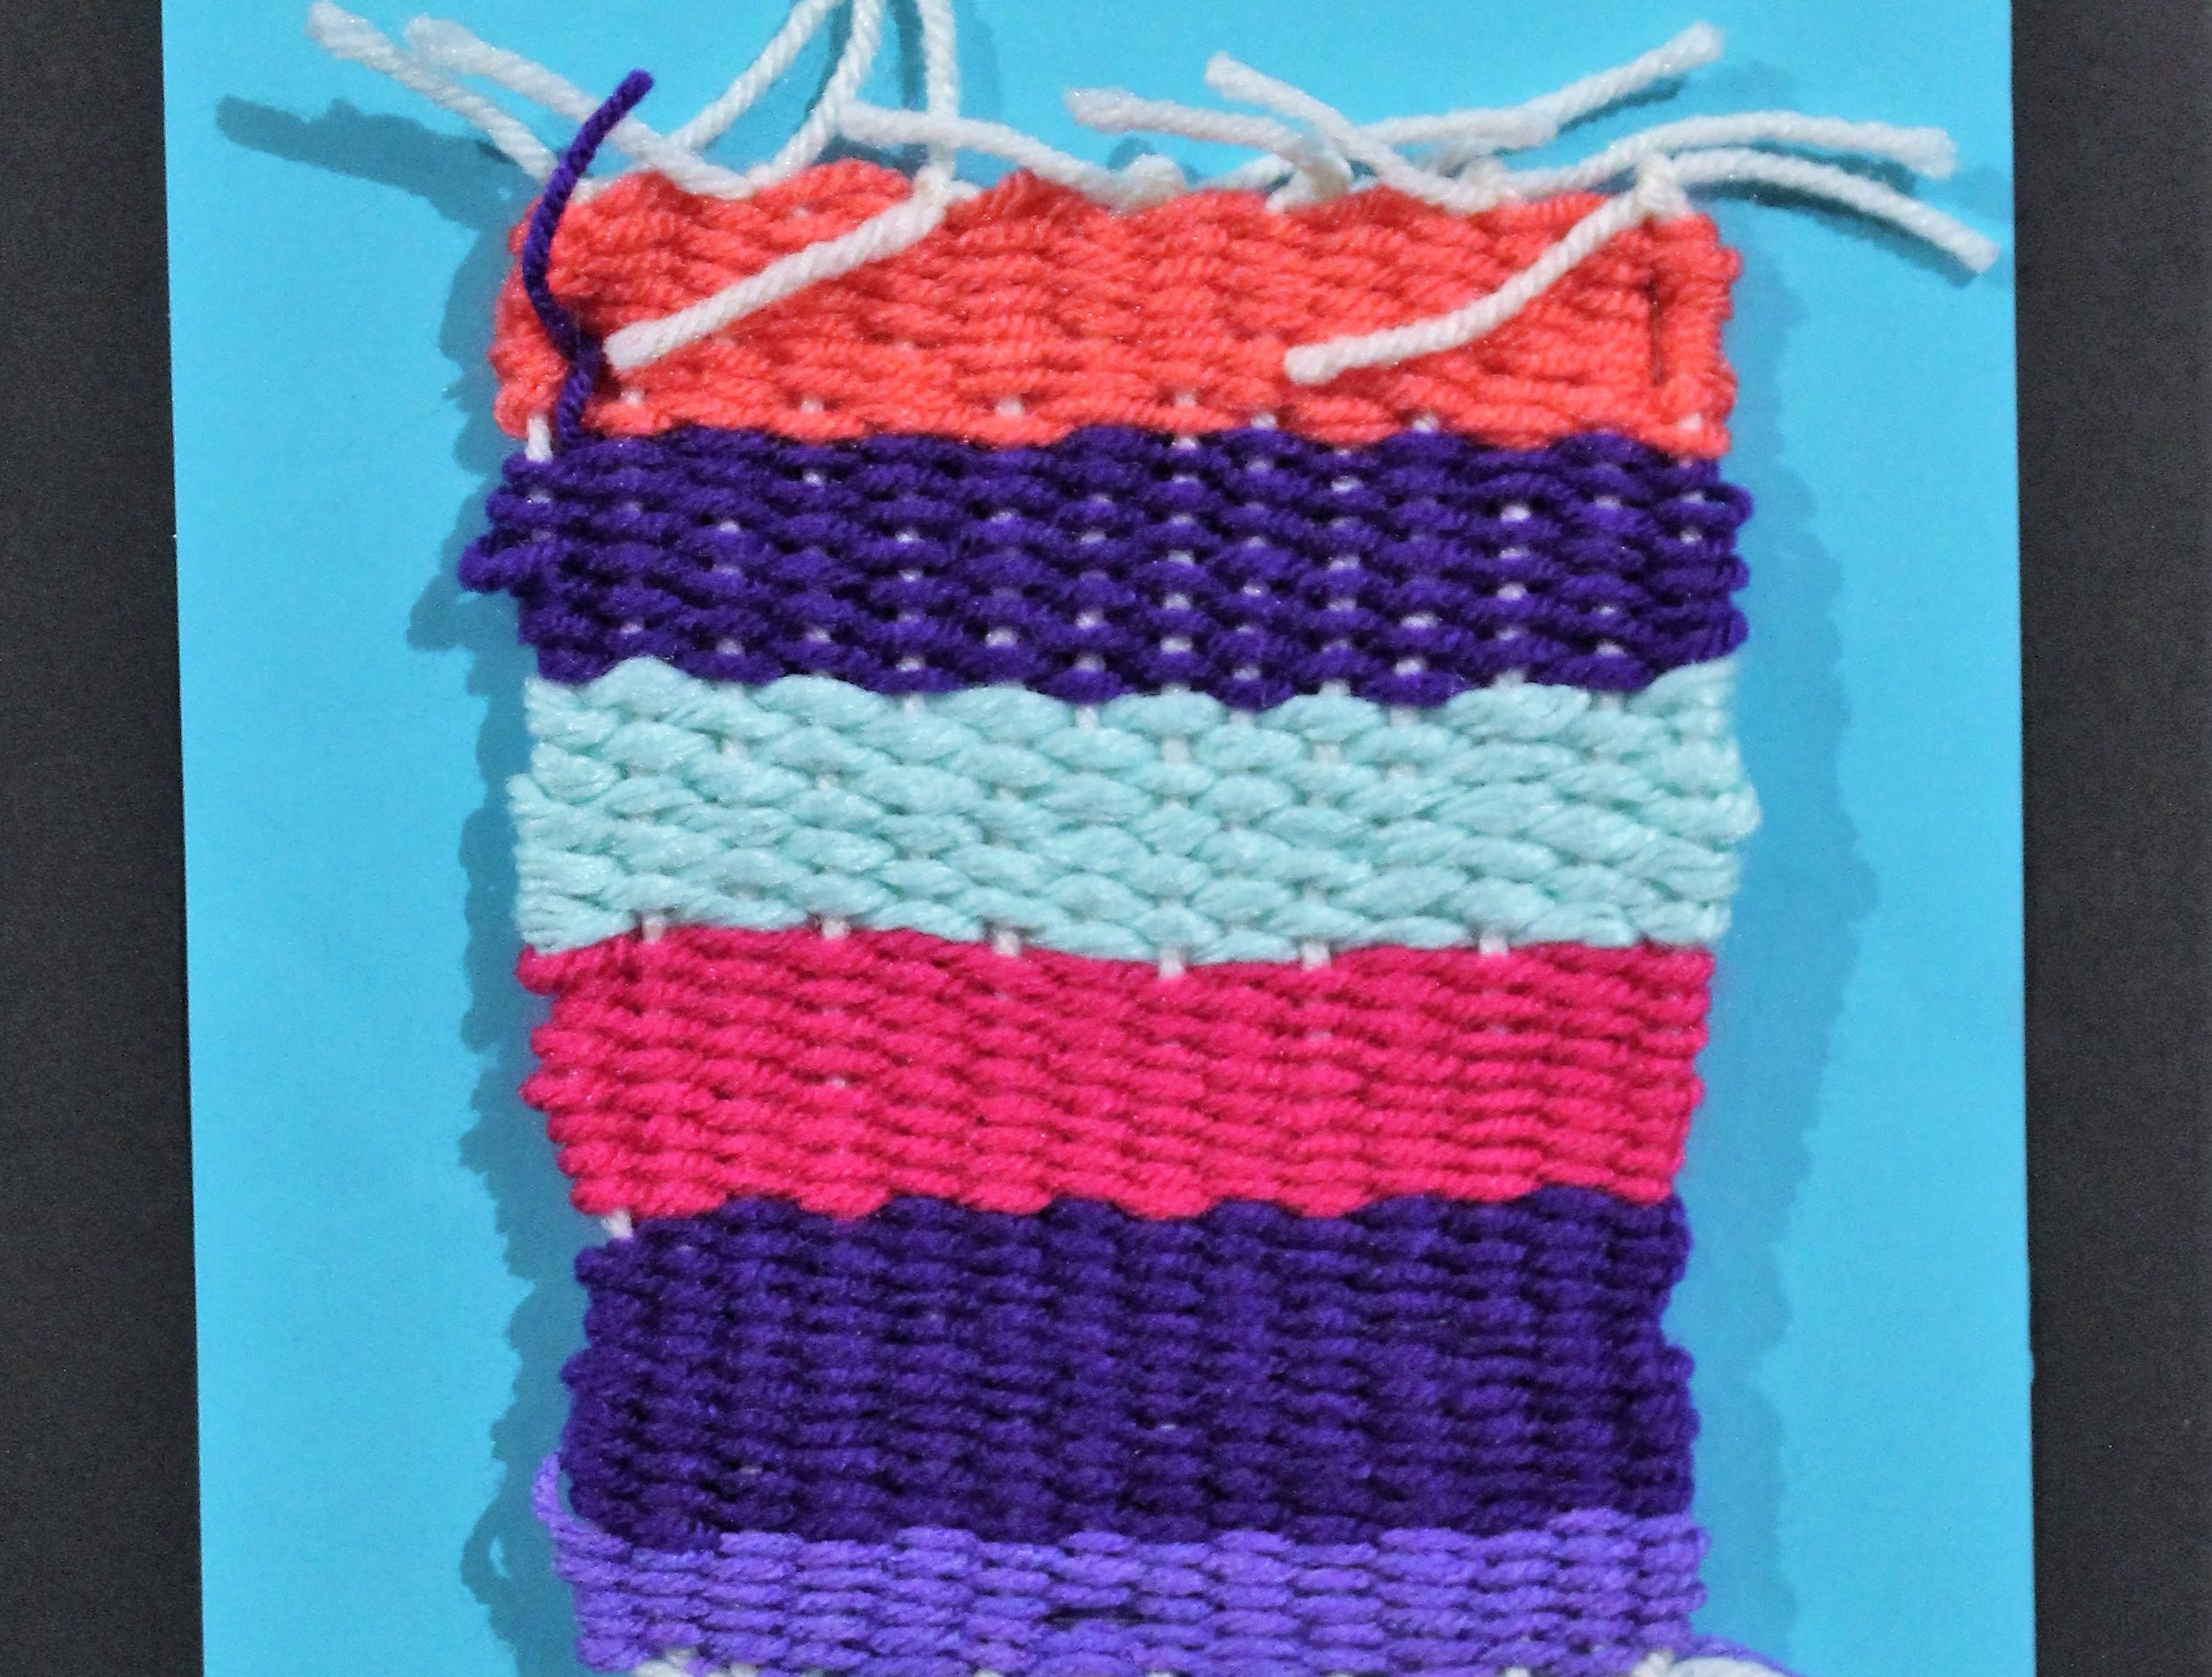 Untitled, yarn, Alicia Valdez, Ortiz Elementary School 5th grader